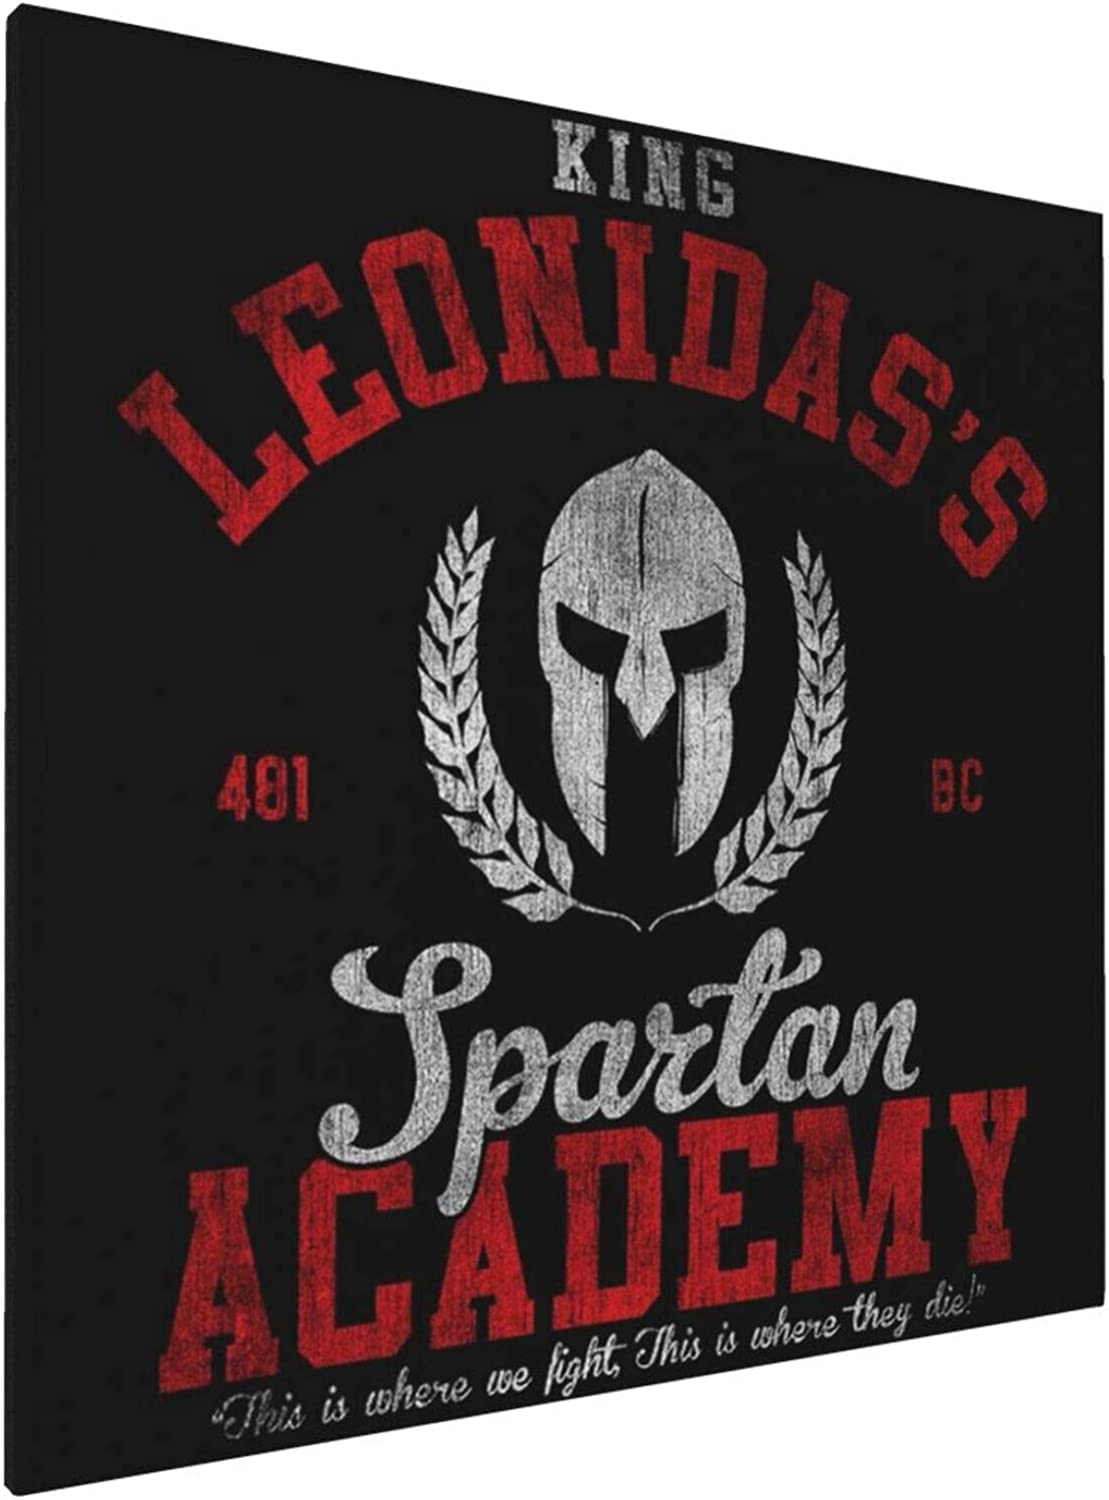 1007 Canvas Prints Wall Art Paintings(20x20in) King Leonidas Spartan Academy 300 Pictures Home Office Decor Framed Posters & Prints